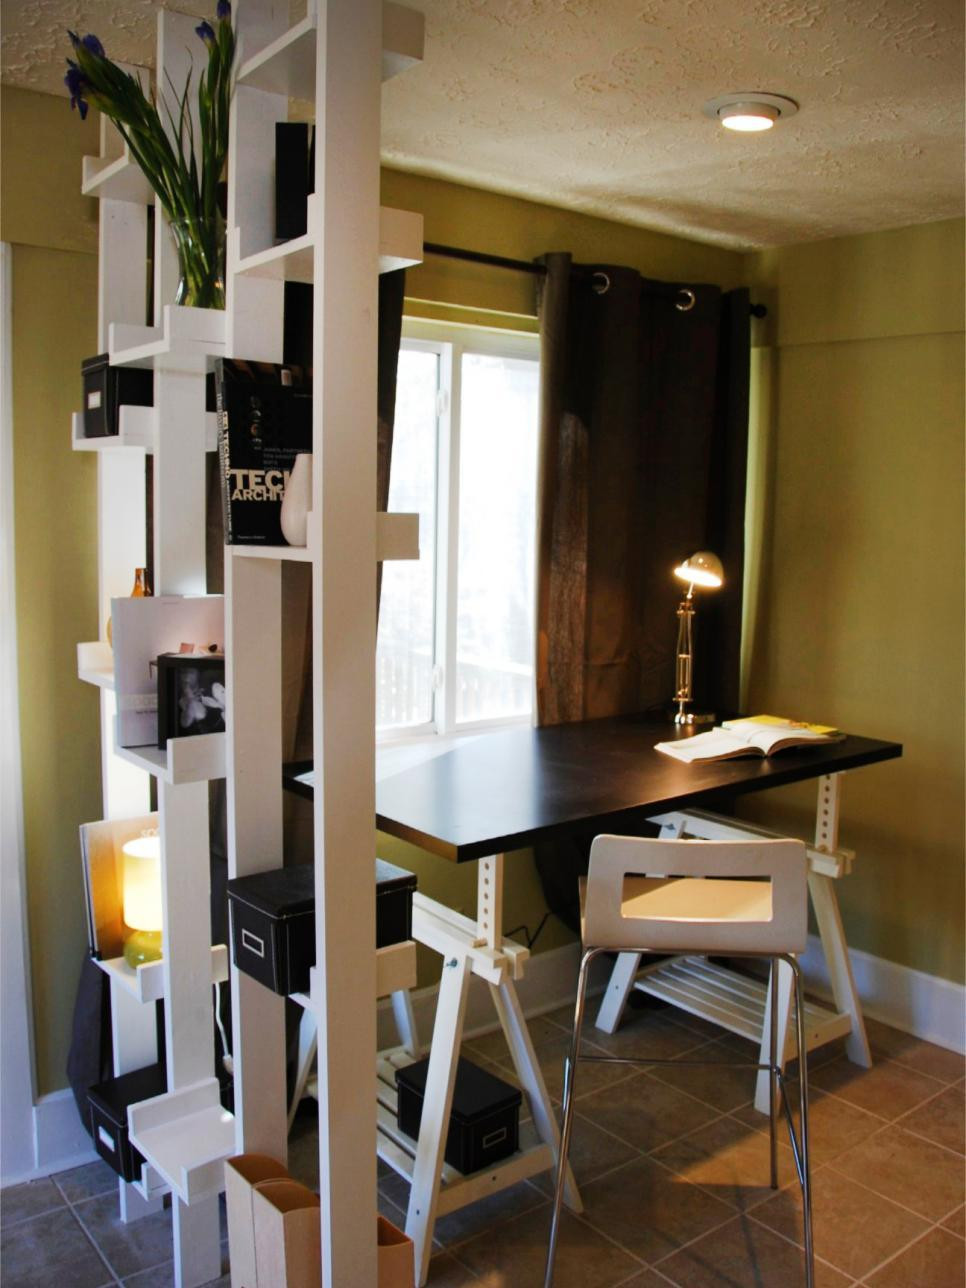 Best ideas about Small Office Space Design . Save or Pin Small fice Space Design Ideas Rafael Home Biz Now.